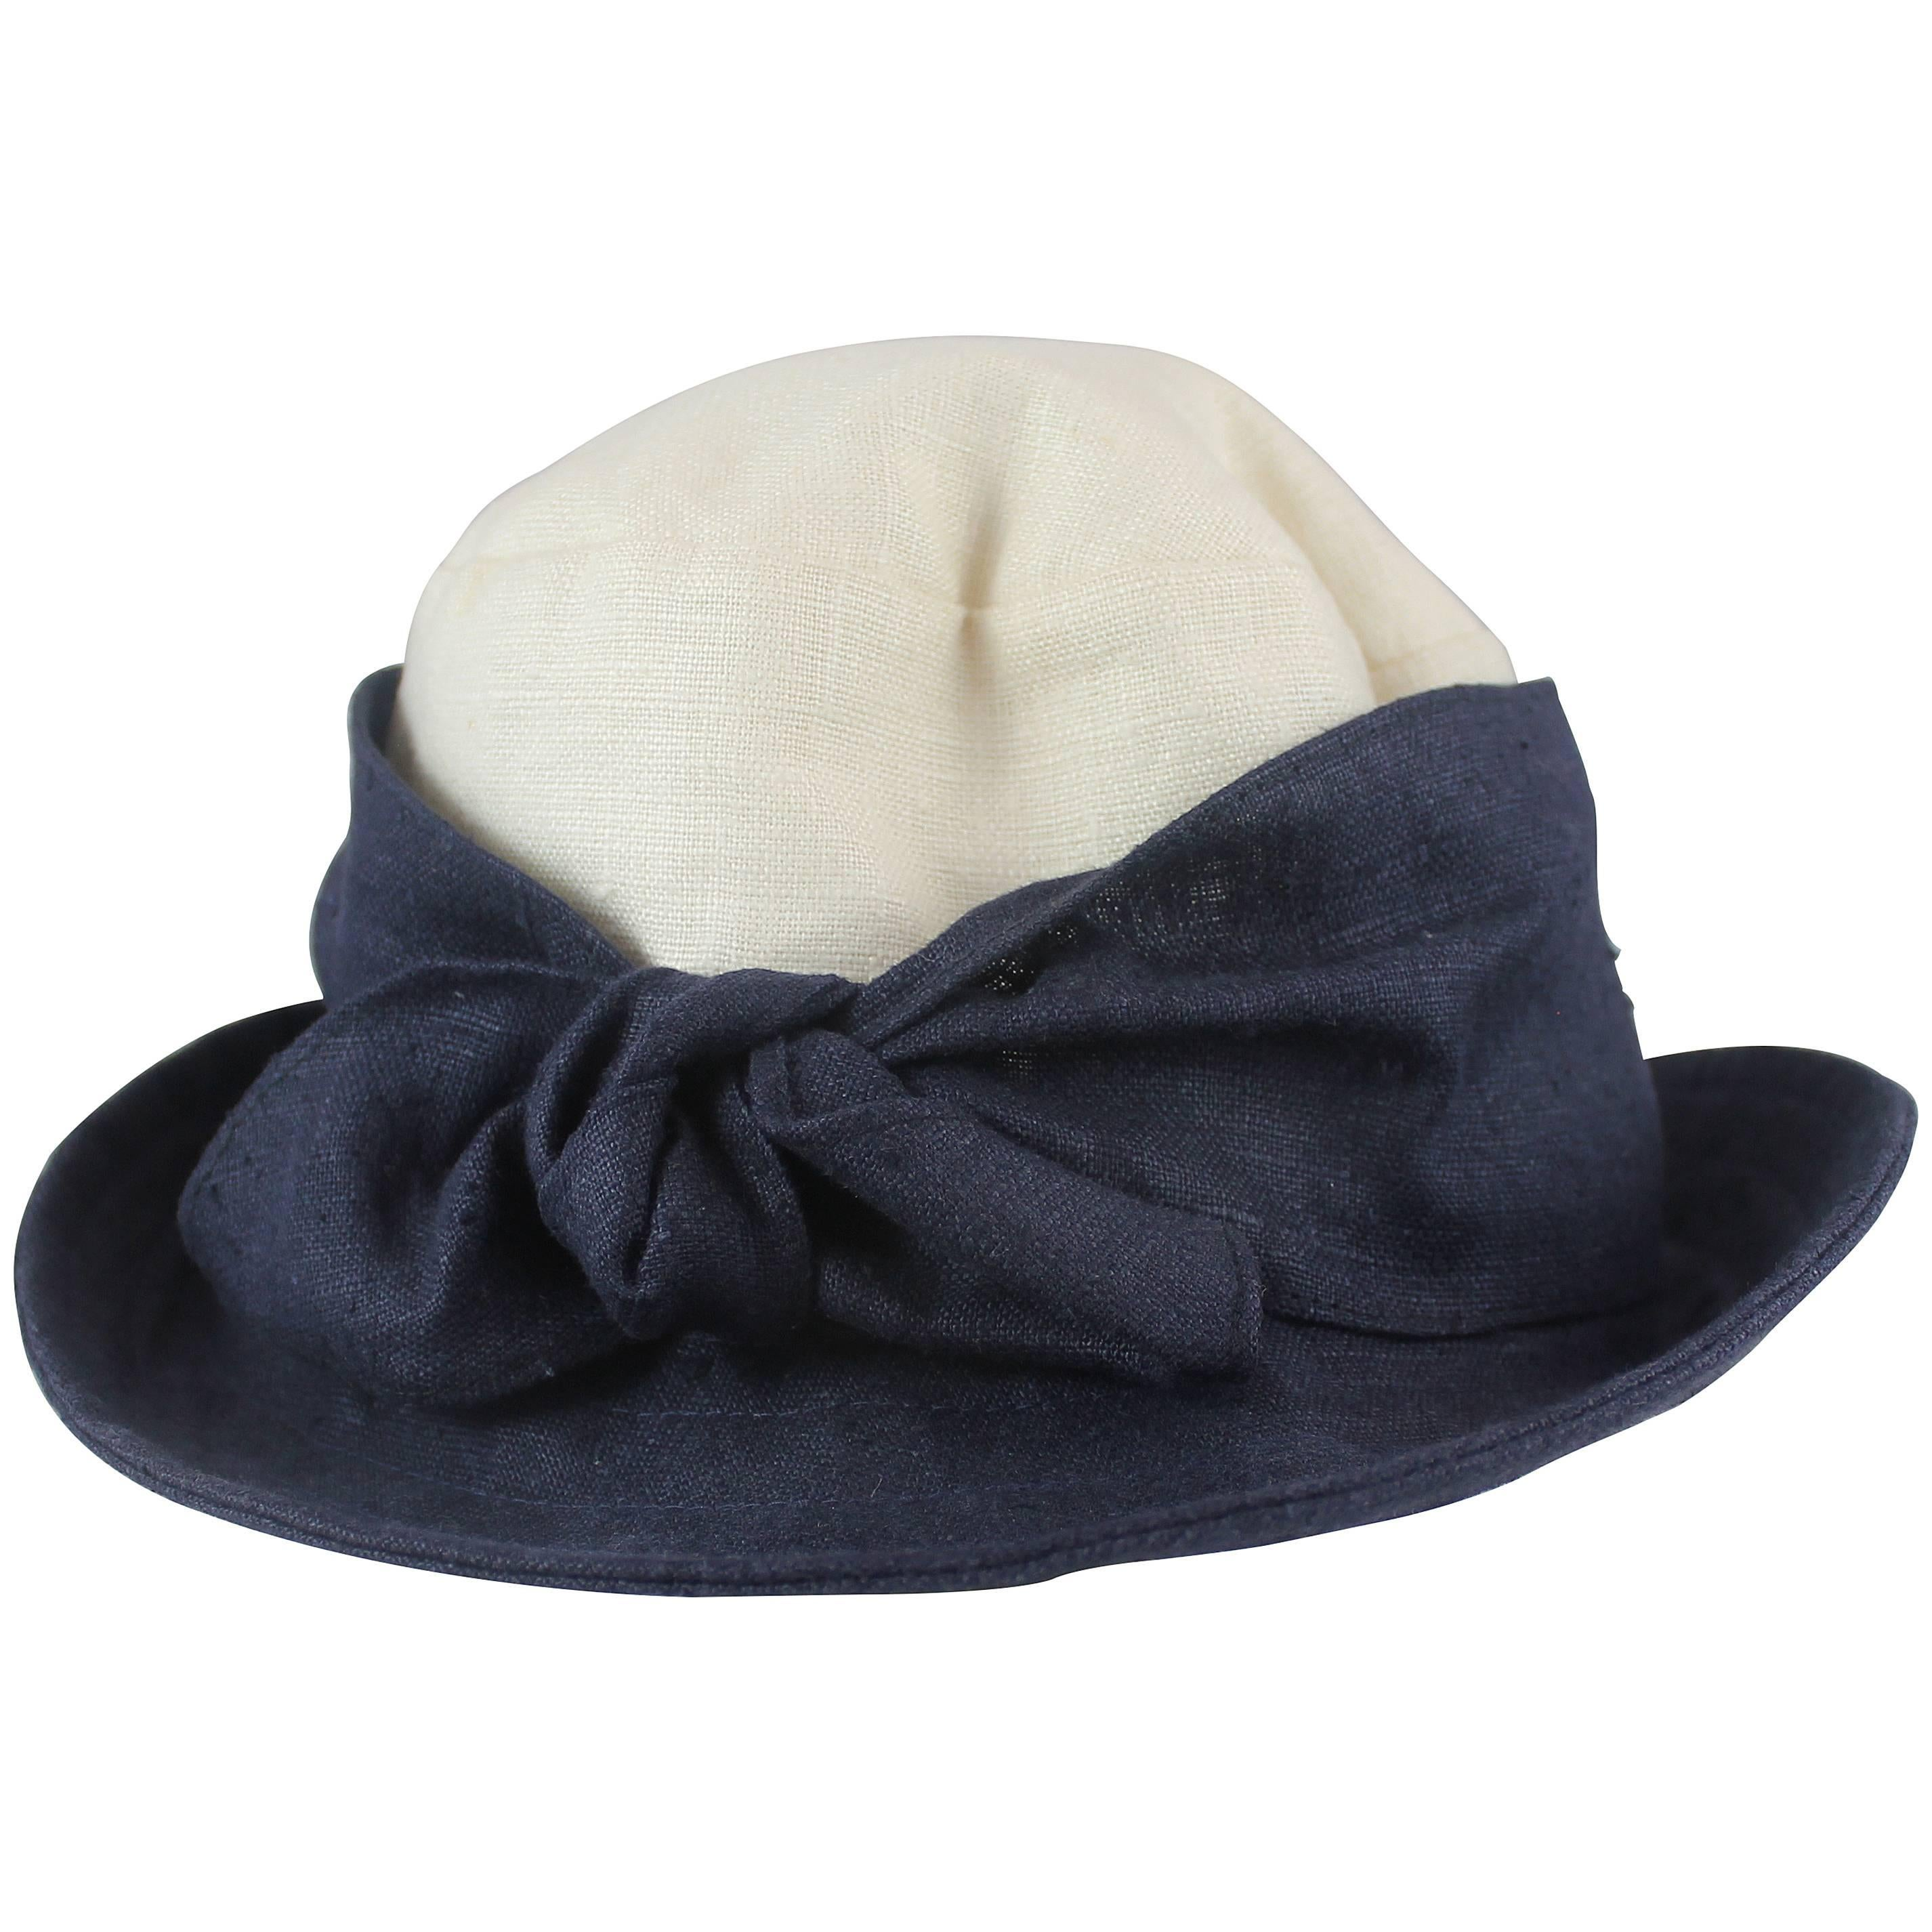 2343884f60e16 Vintage Hats For Sale in Palm Beach - 1stdibs